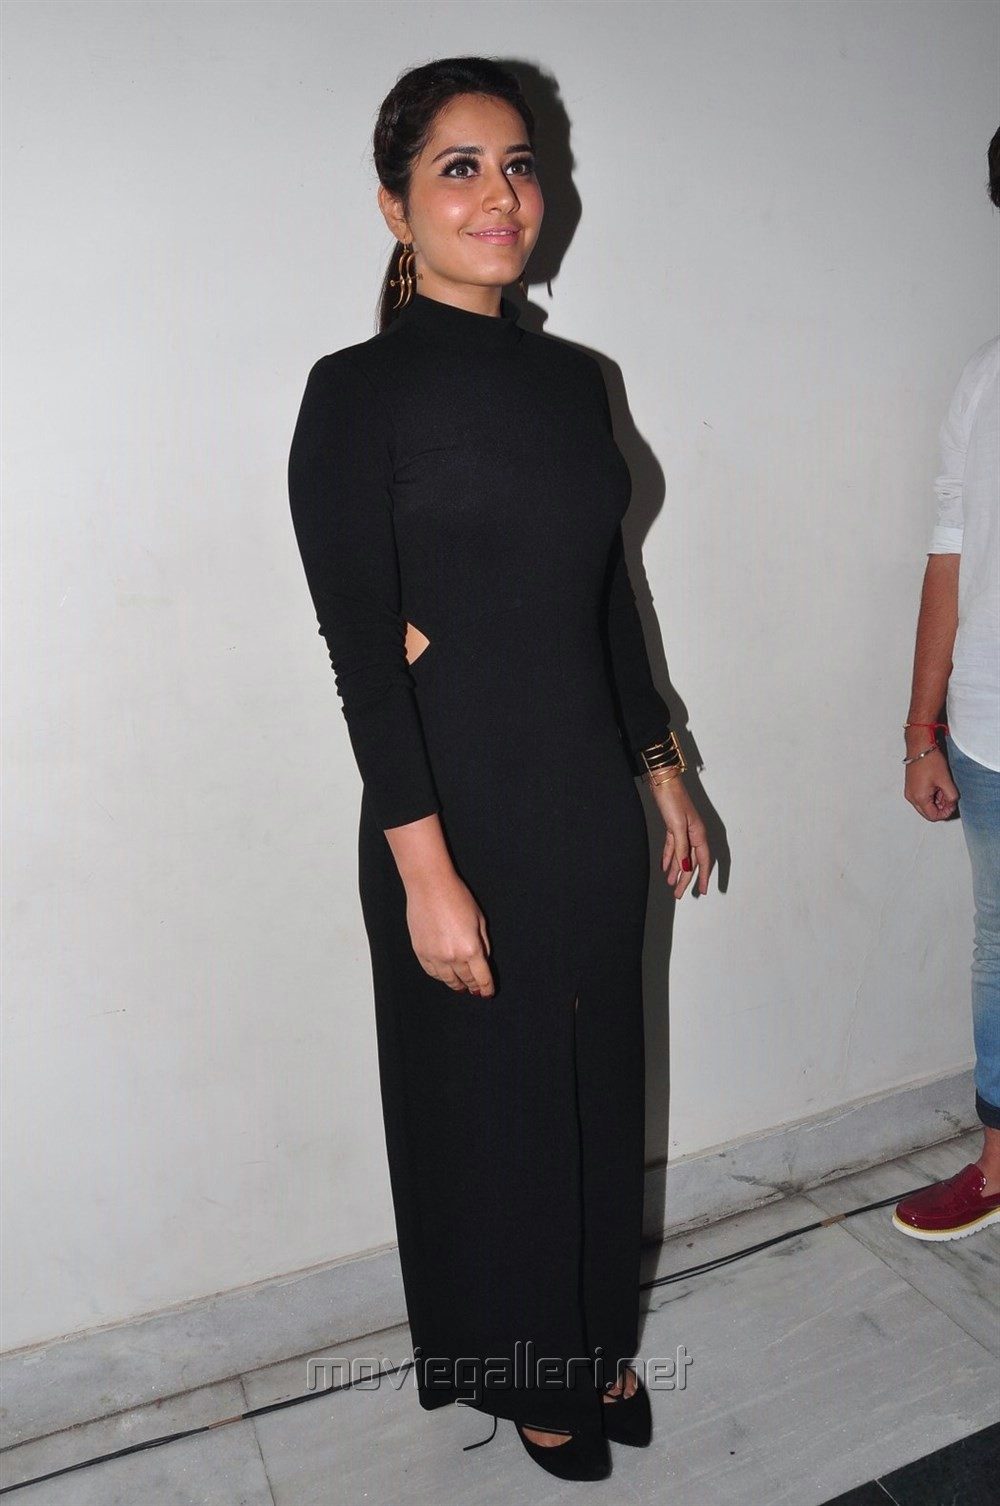 Telugu Heroine Raashi Khanna in Black Dress Pics